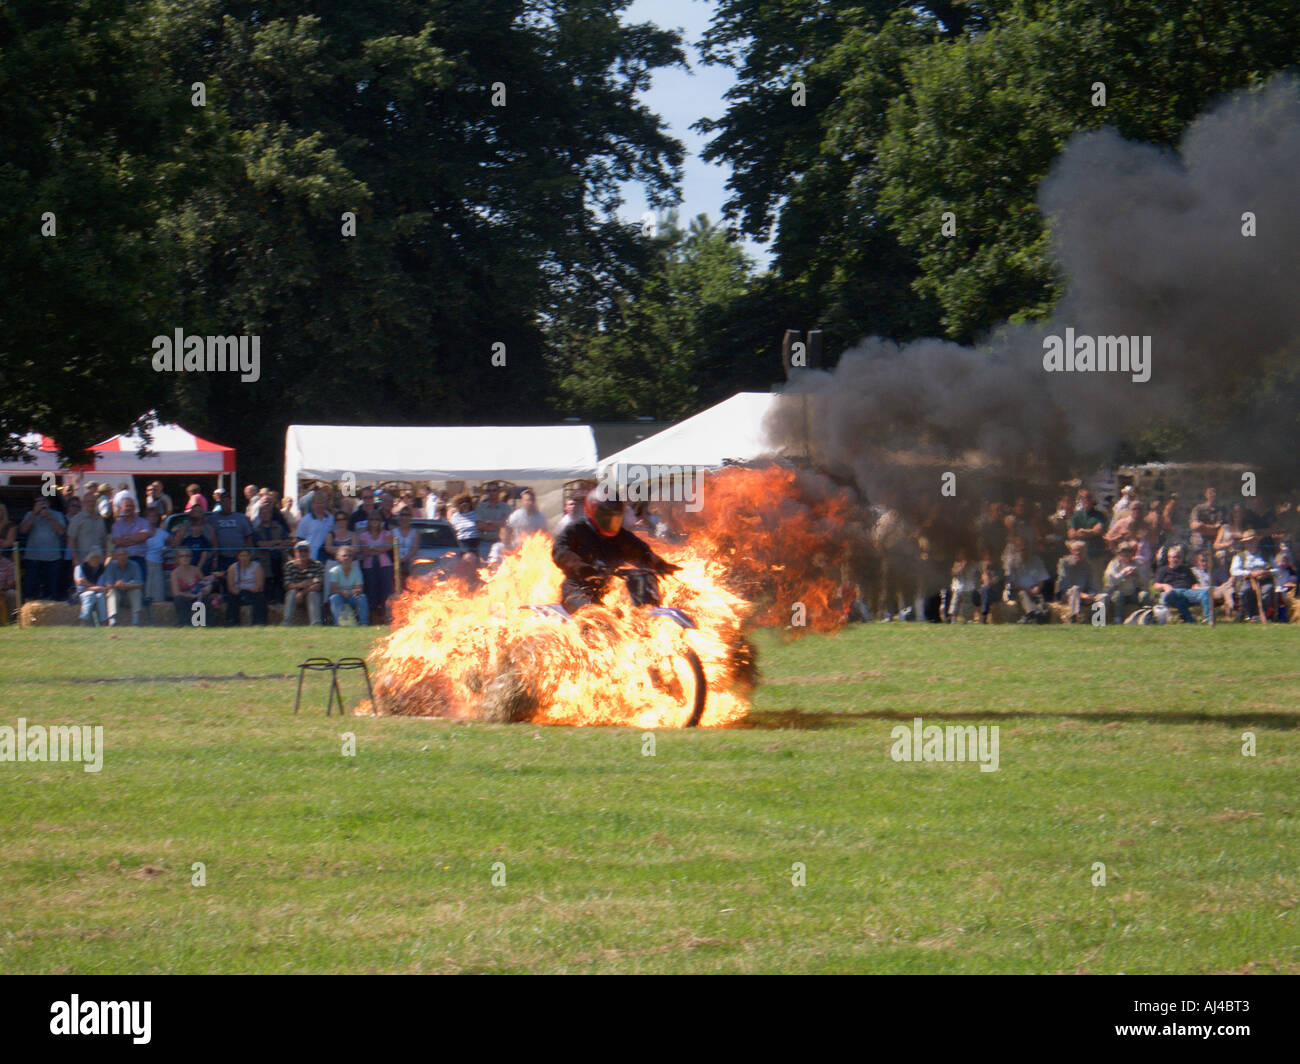 Daredevil Motorcycling Fire Stunt County Fair Cheshire England - Stock Image